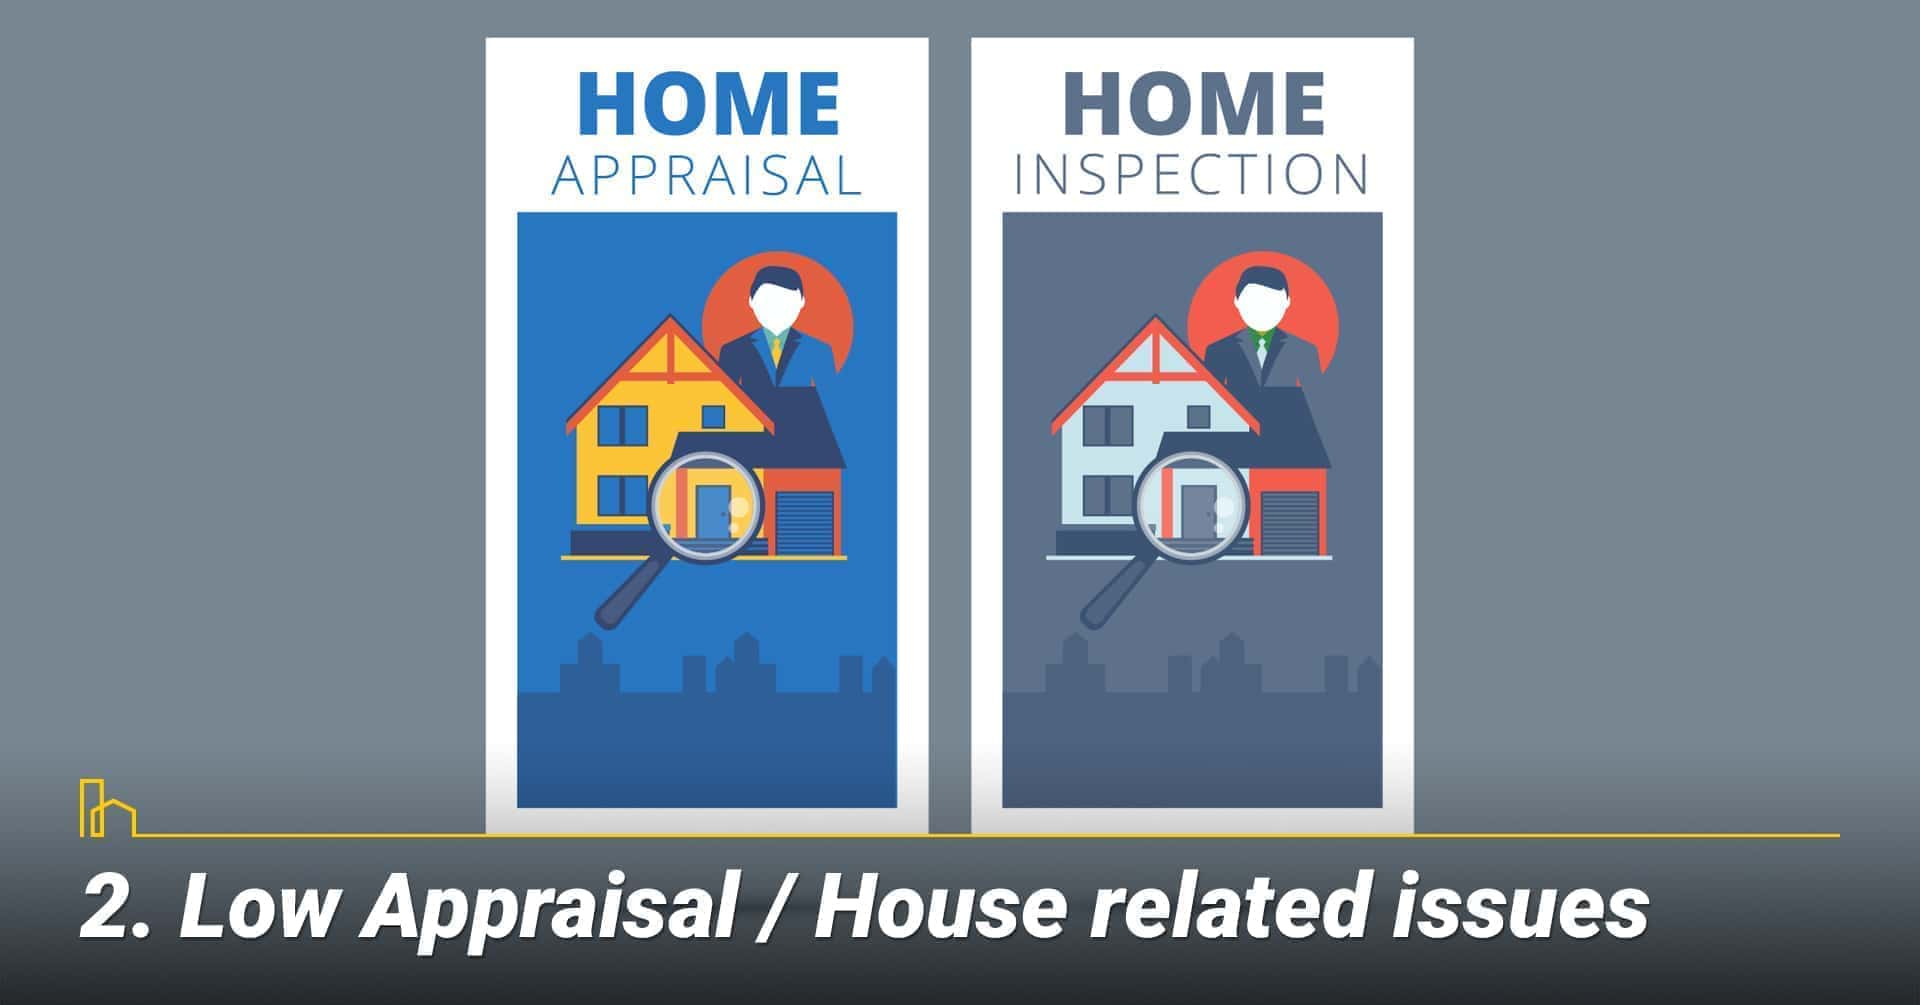 Low Appraisal / House related issues